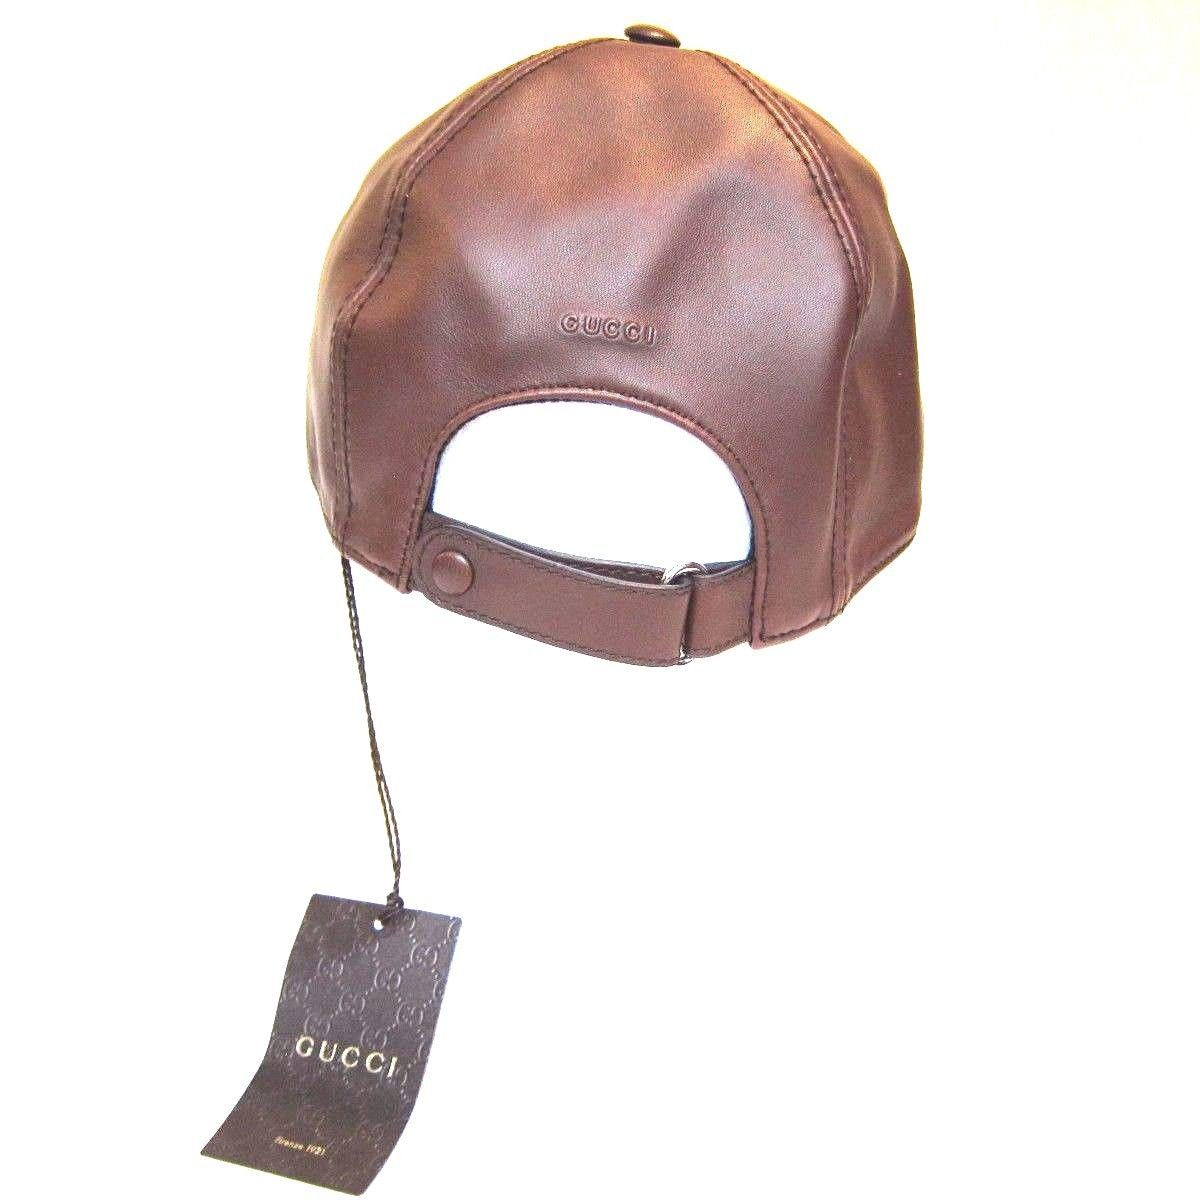 431c1d83120 B-161150 New Gucci Brown Leather Baseball Hat Cap Size Medium MD